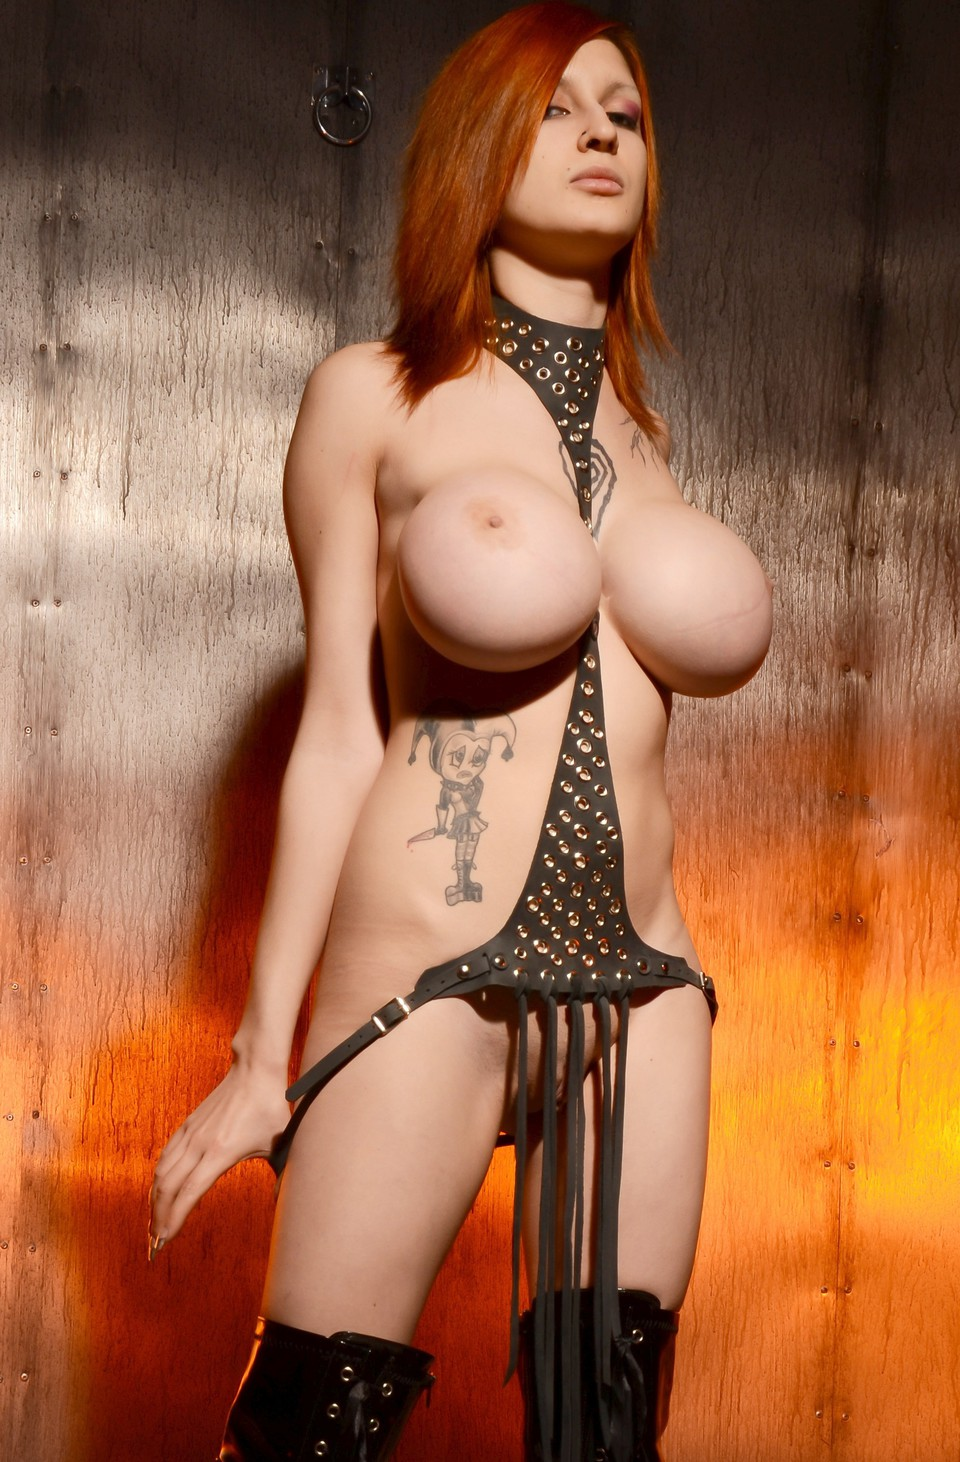 Hot goth girls naked, nude girl in pool of blood